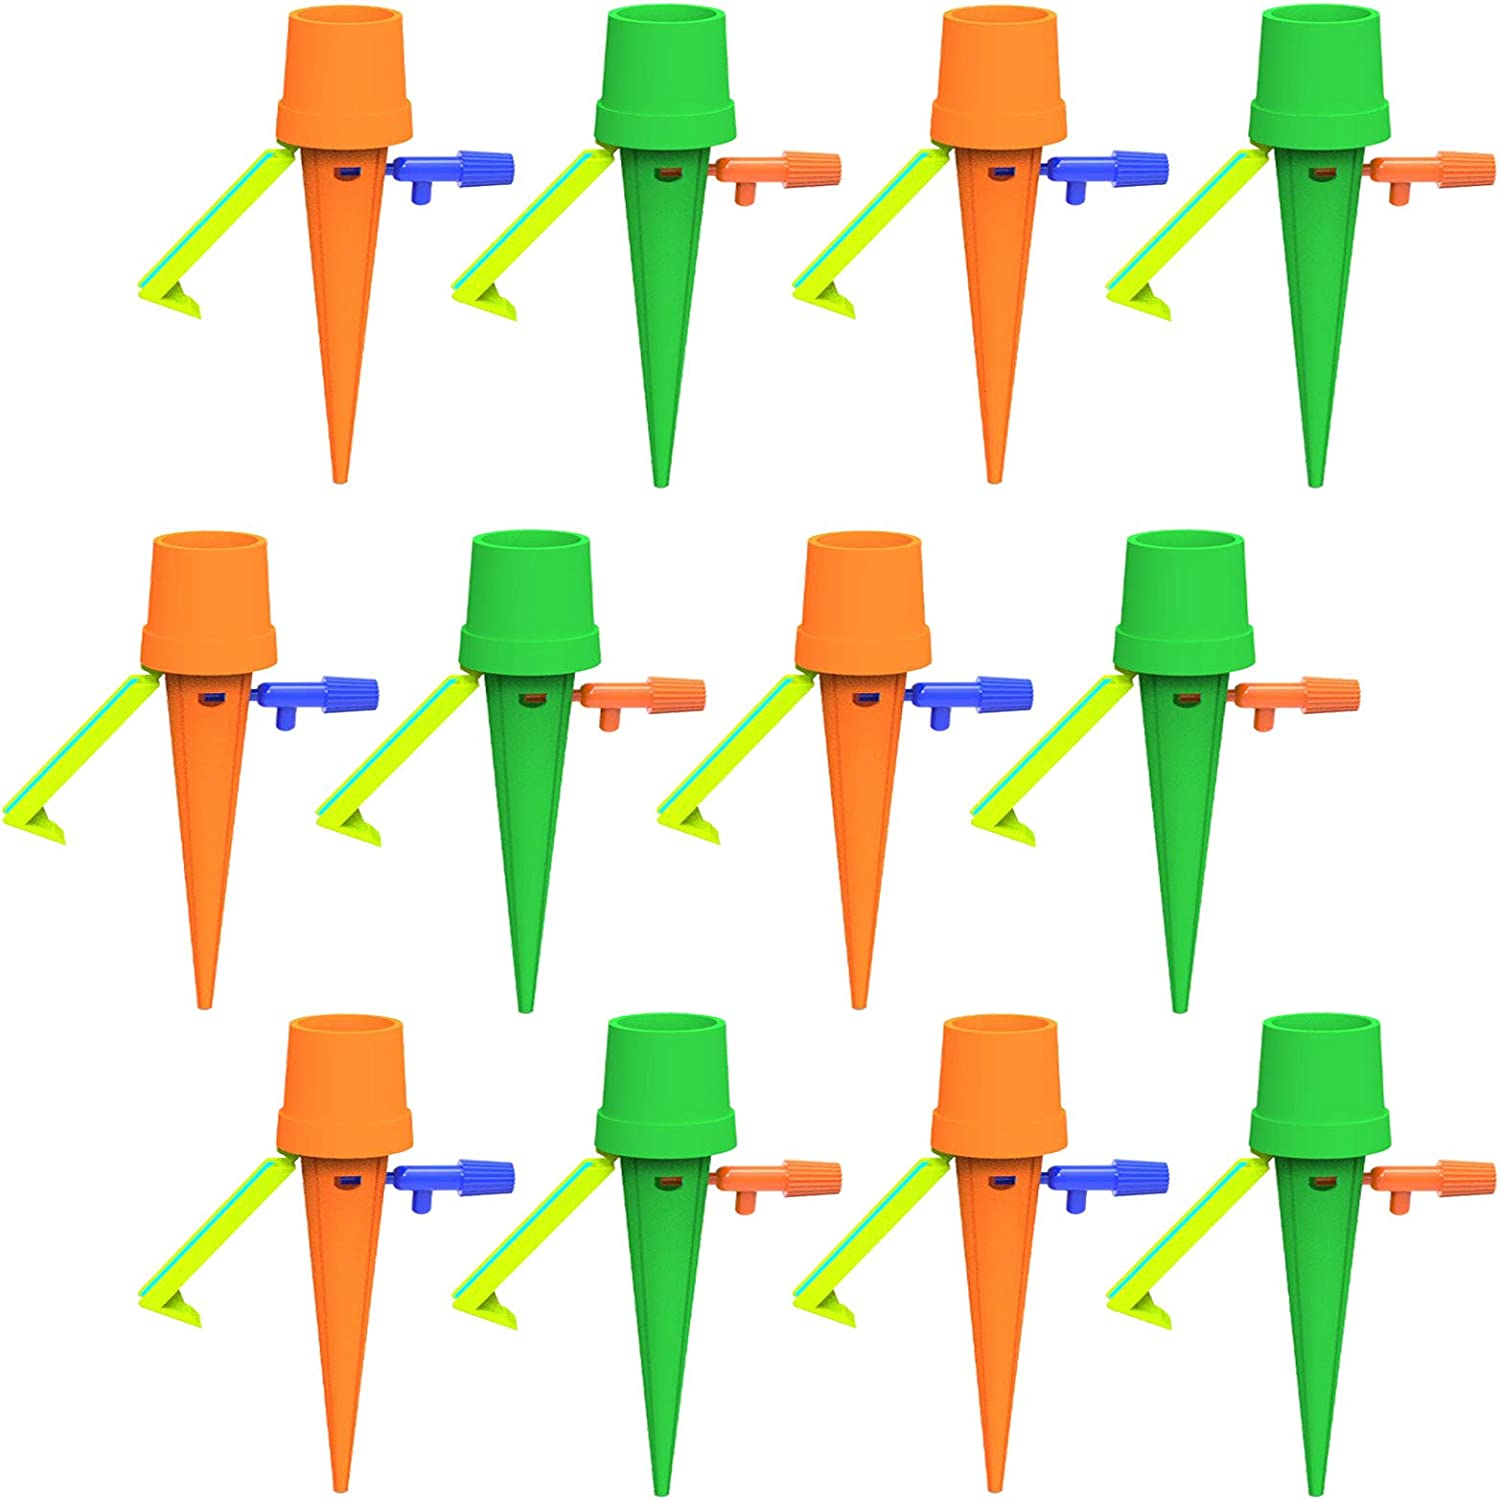 12 Pcs Automatic Plant Watering Spikes - Self Water Plants System Devices with Control Switch, Vacations Potted Waterers Stakes When Away